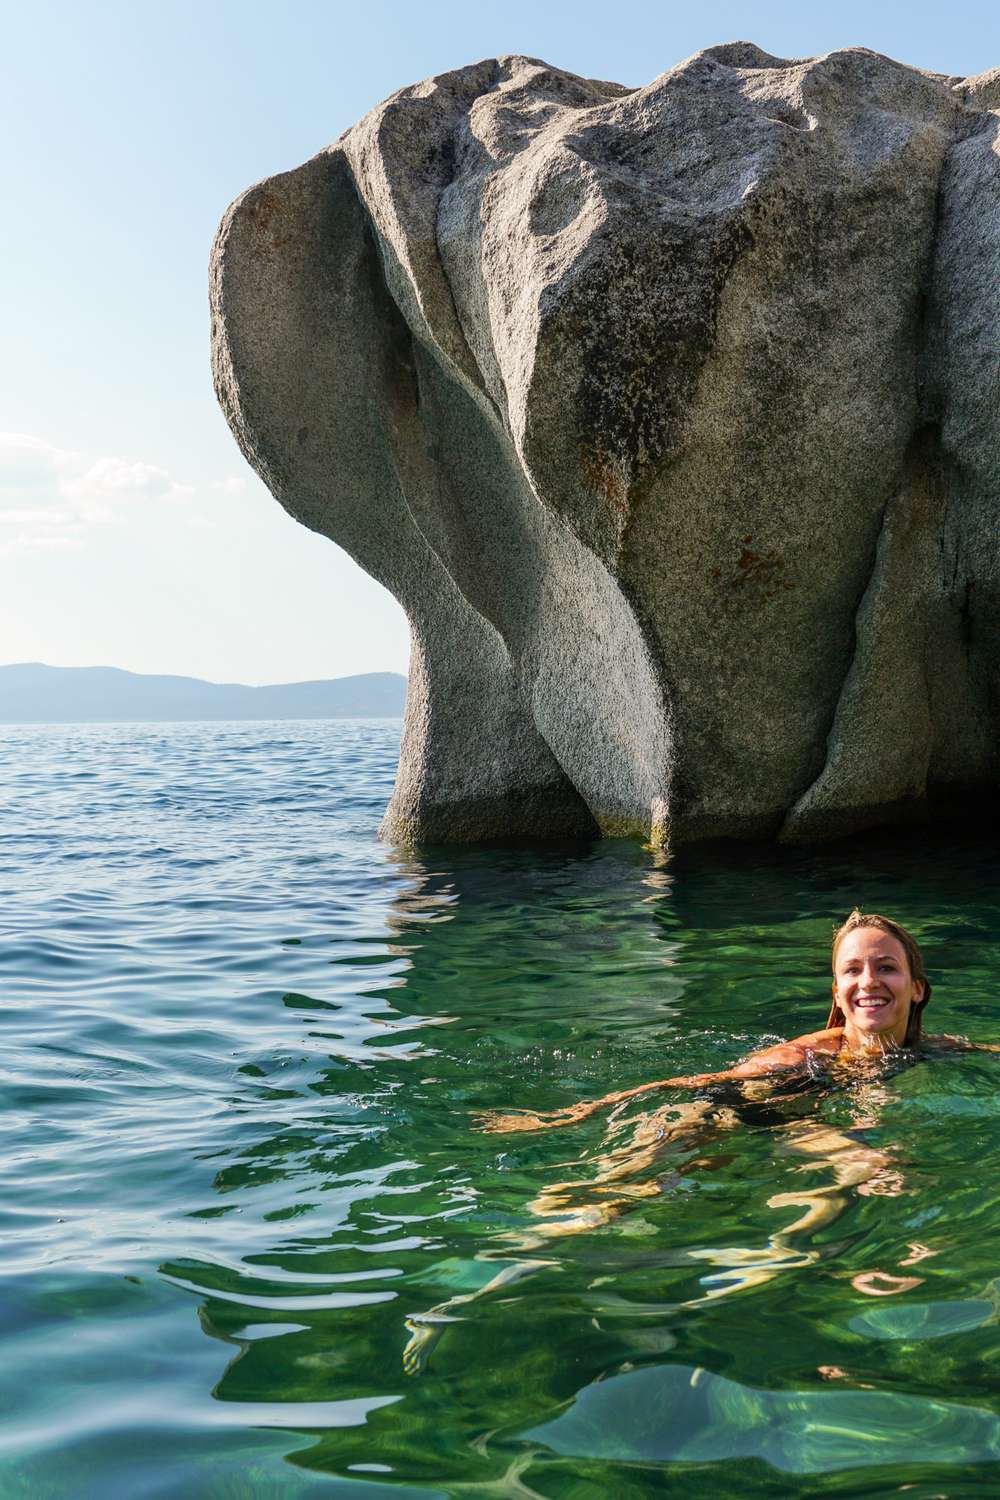 Photo of woman swimming by boulder in Lake Tahoe